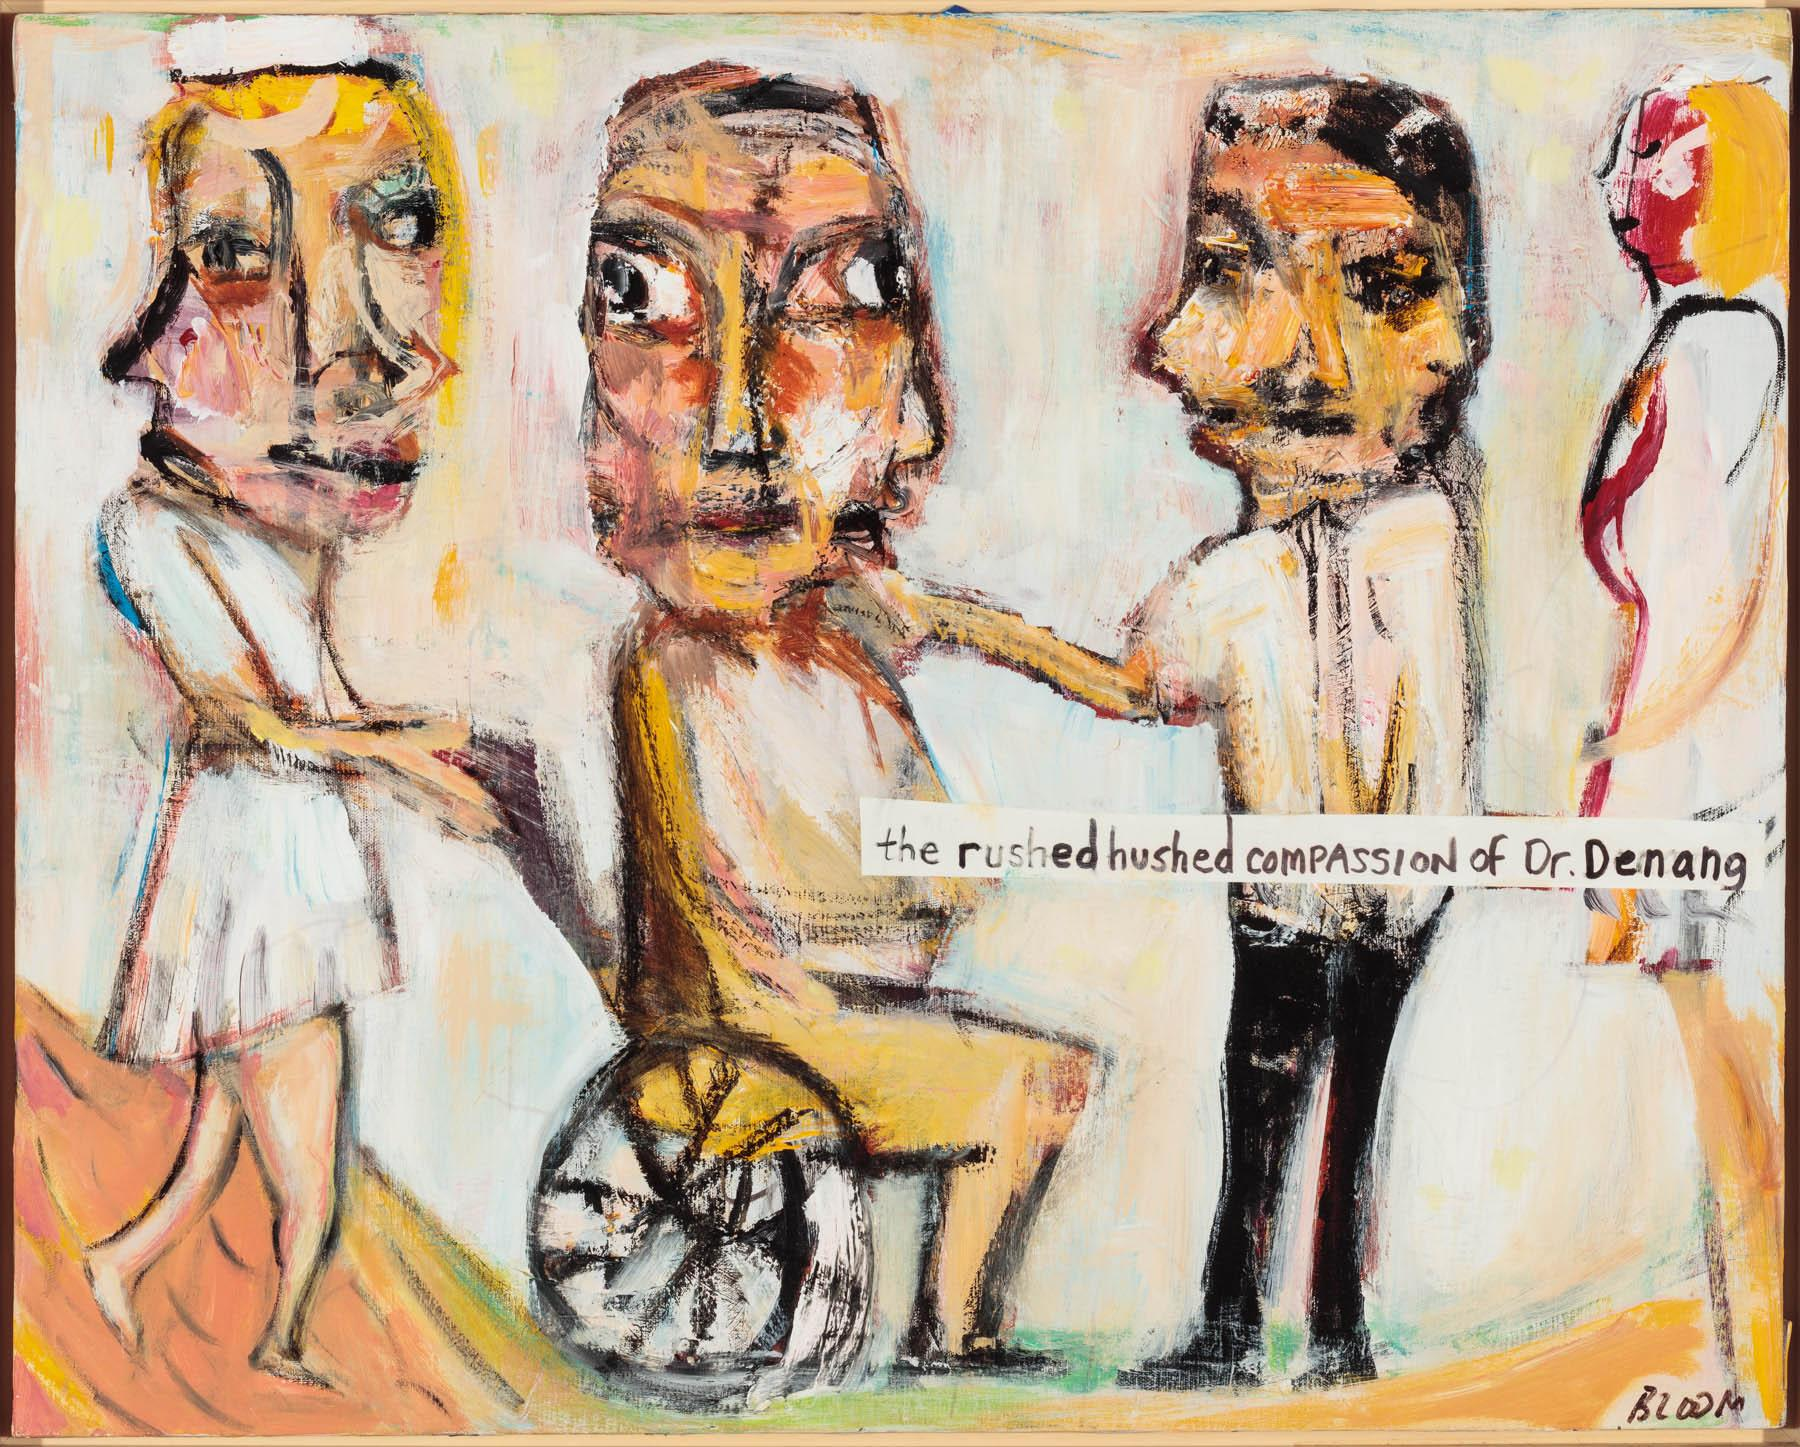 Jim Bloom (American, b. 1968). The Rushed Hushed Compassion of Dr. Denang, n.d. Mixed media on canvas, 24 x 30 in. (61 x 76.2 cm). Collection of Victor F. Keen